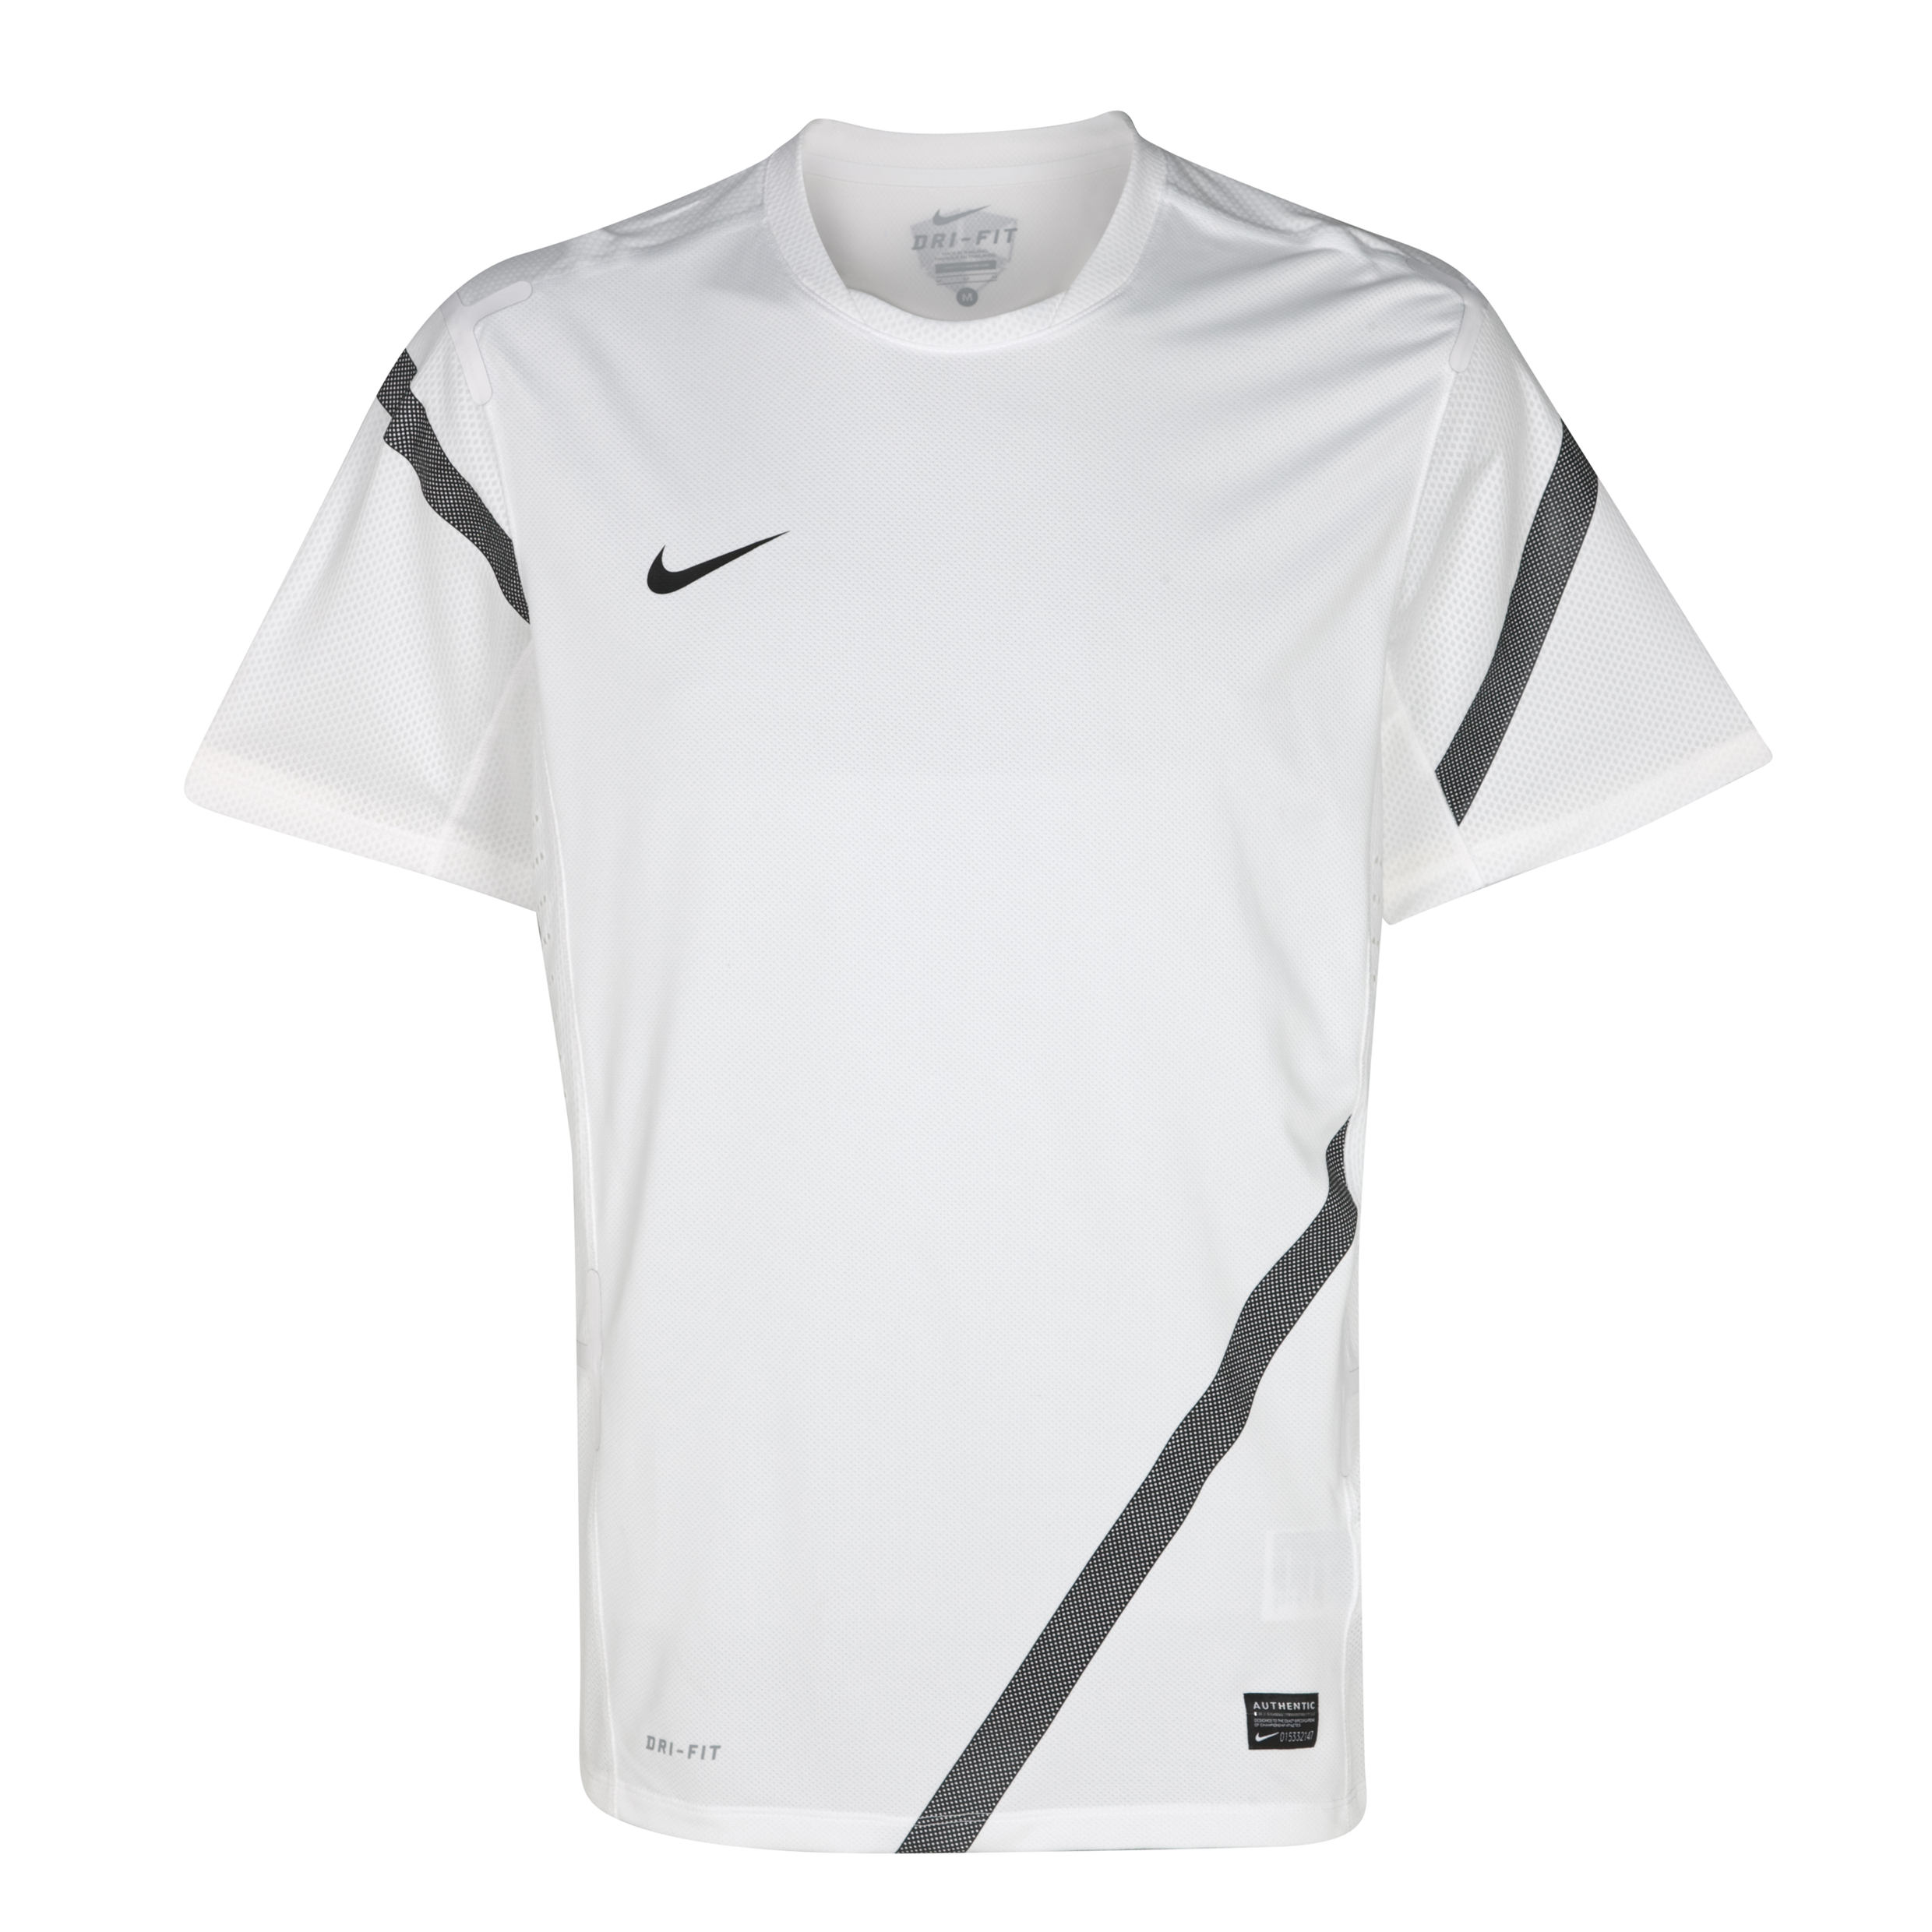 Nike Elite Training Top - White/Black